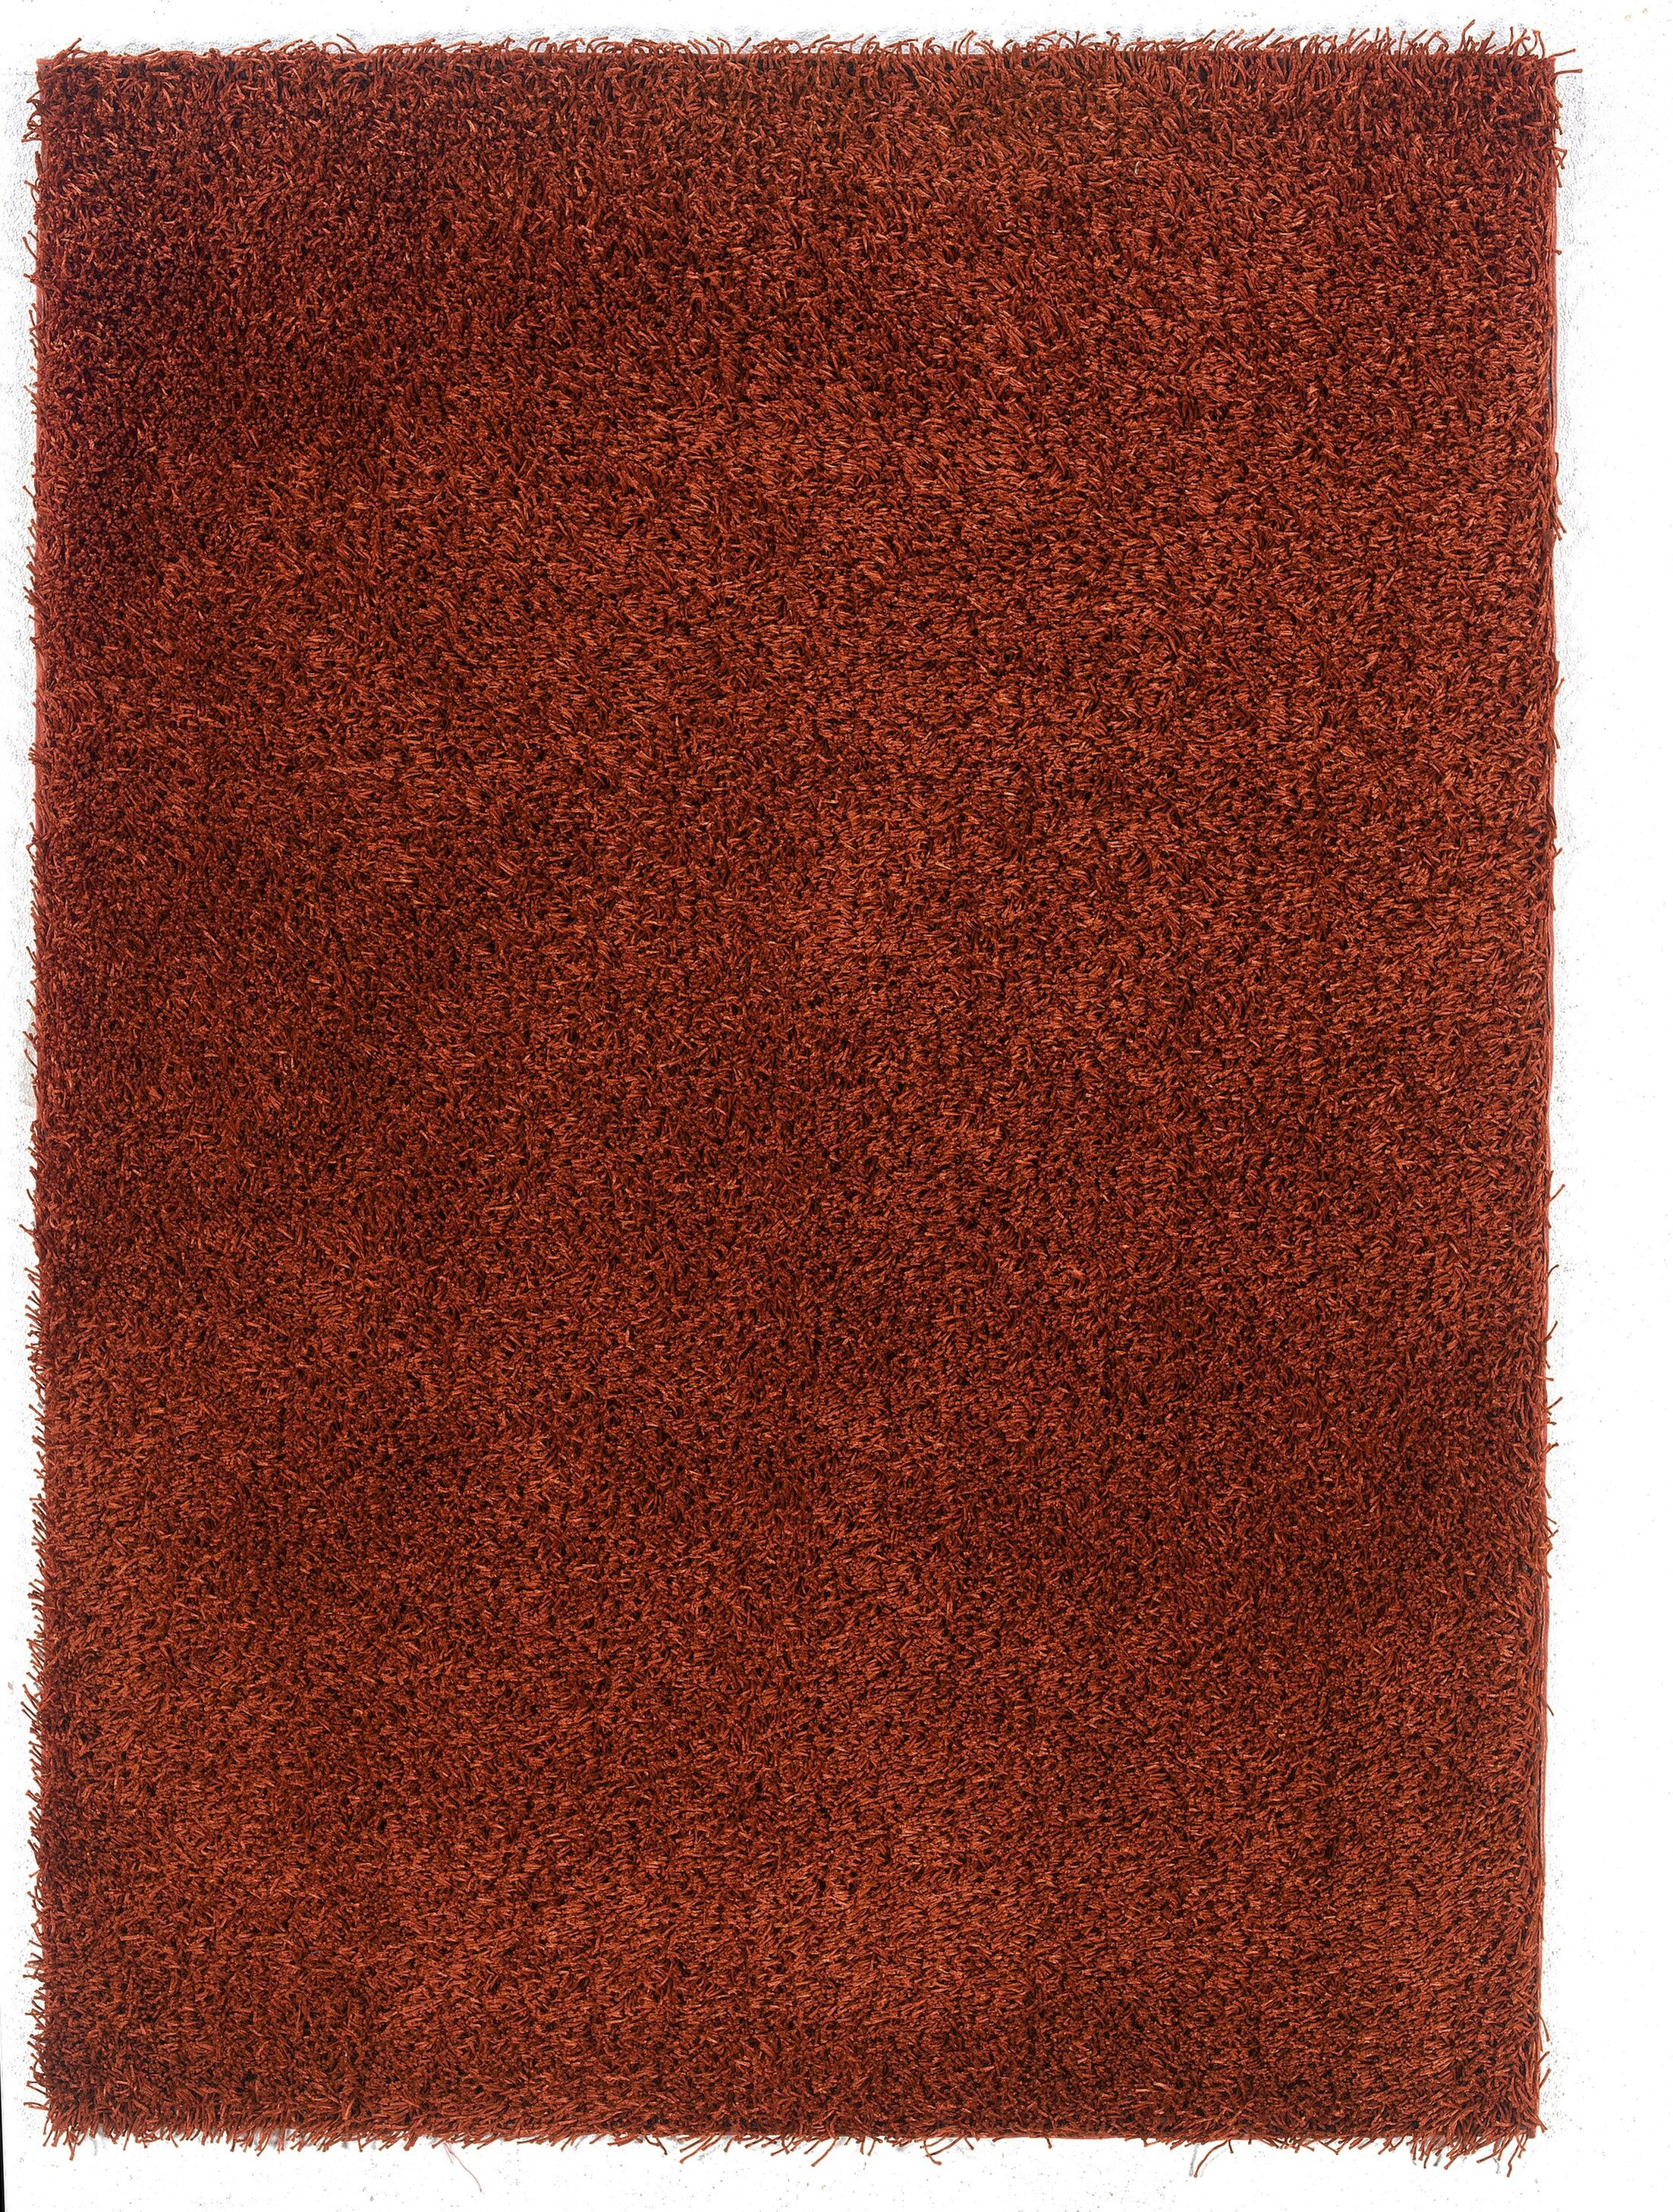 Hand-Tufted Red Area Rug Rug Size: Rectangle 8' x 10'